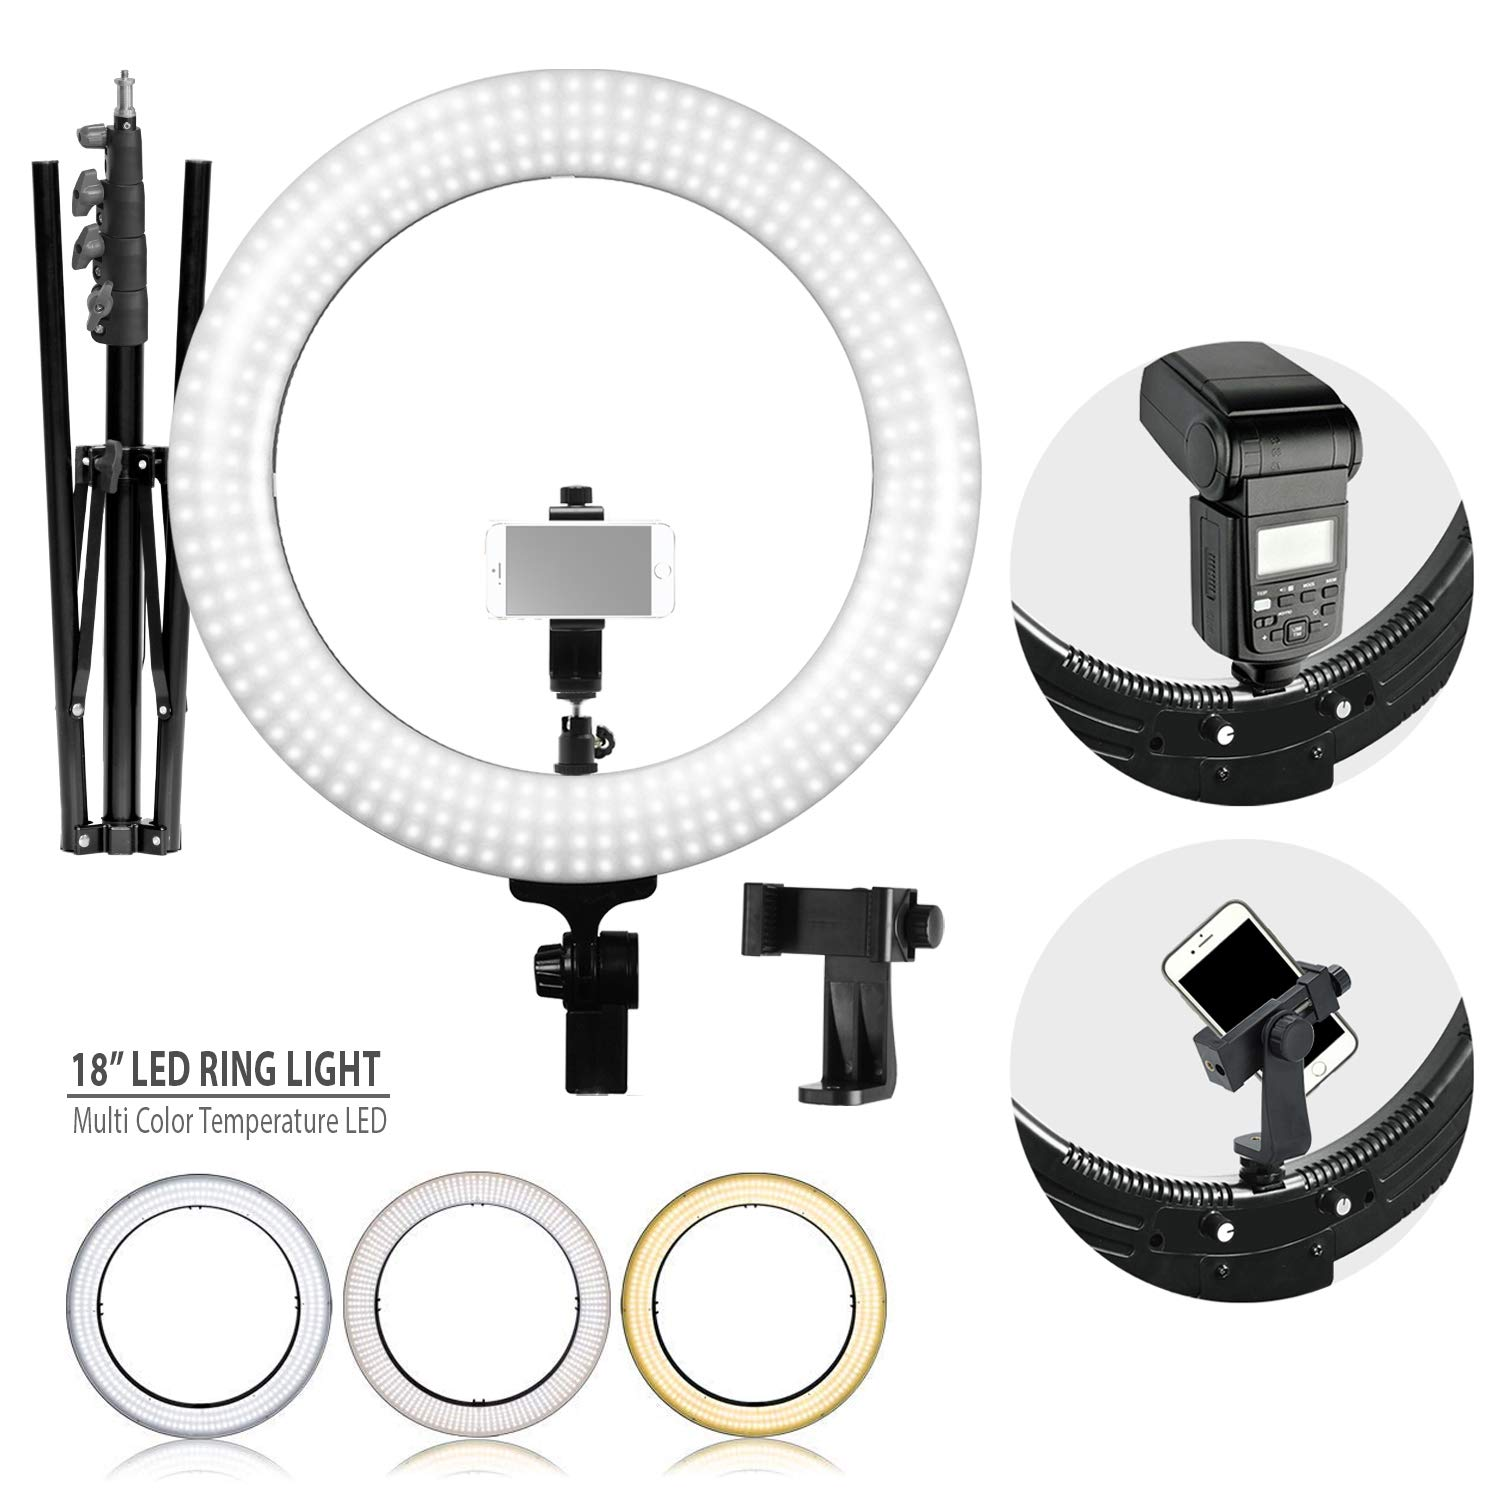 LimoStudio LED Ring Light 18-inch Diameter with Tripod Stand, Angle Adjusting Camera Holding Plate, Cell Phone Holding Clip, Color Filter Fabric Cover, Facial Beauty Photo Shooting, AGG1451V2 by LimoStudio